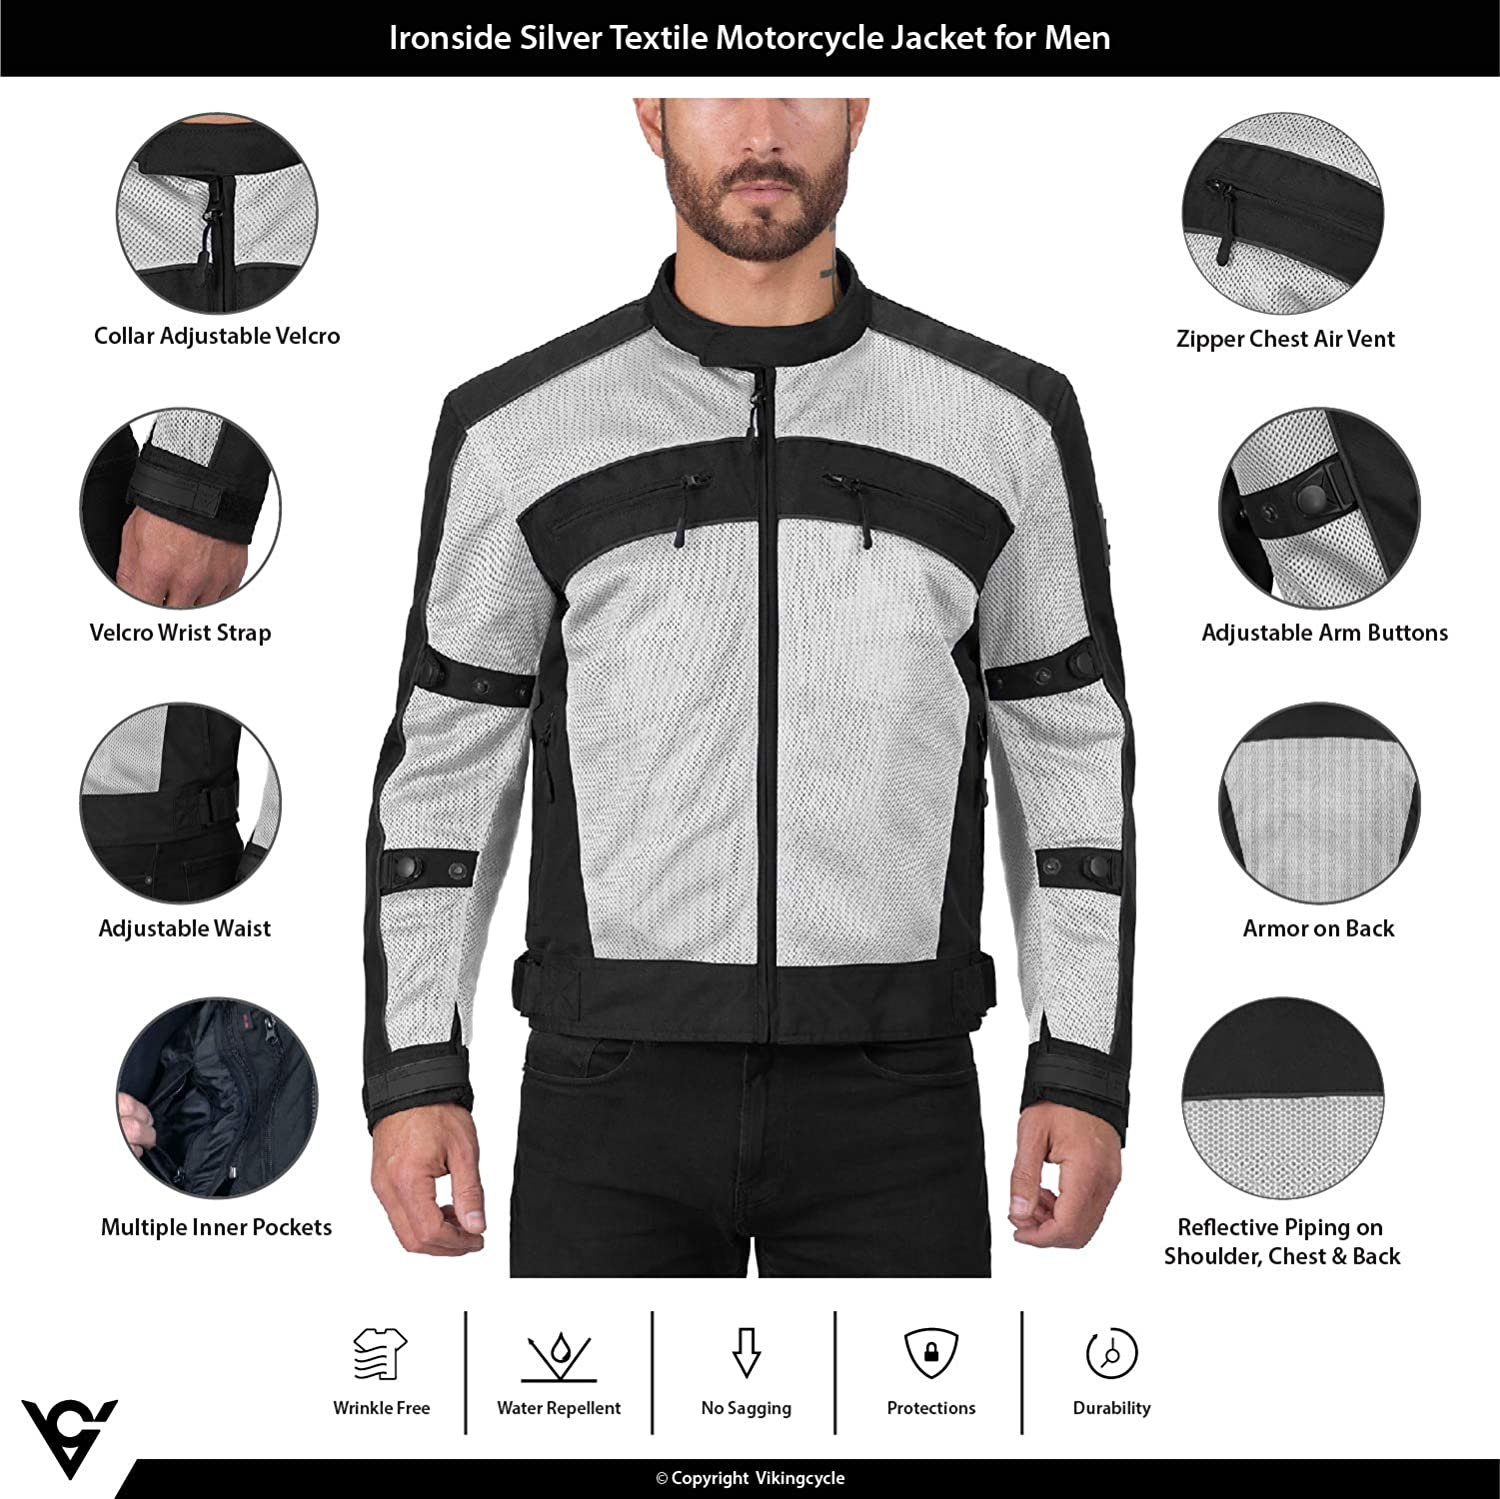 CE Approved Breathable Armor for Bikers Viking Cycle Ironside Textile Mesh Motorcycle Jacket for Men Adjustable